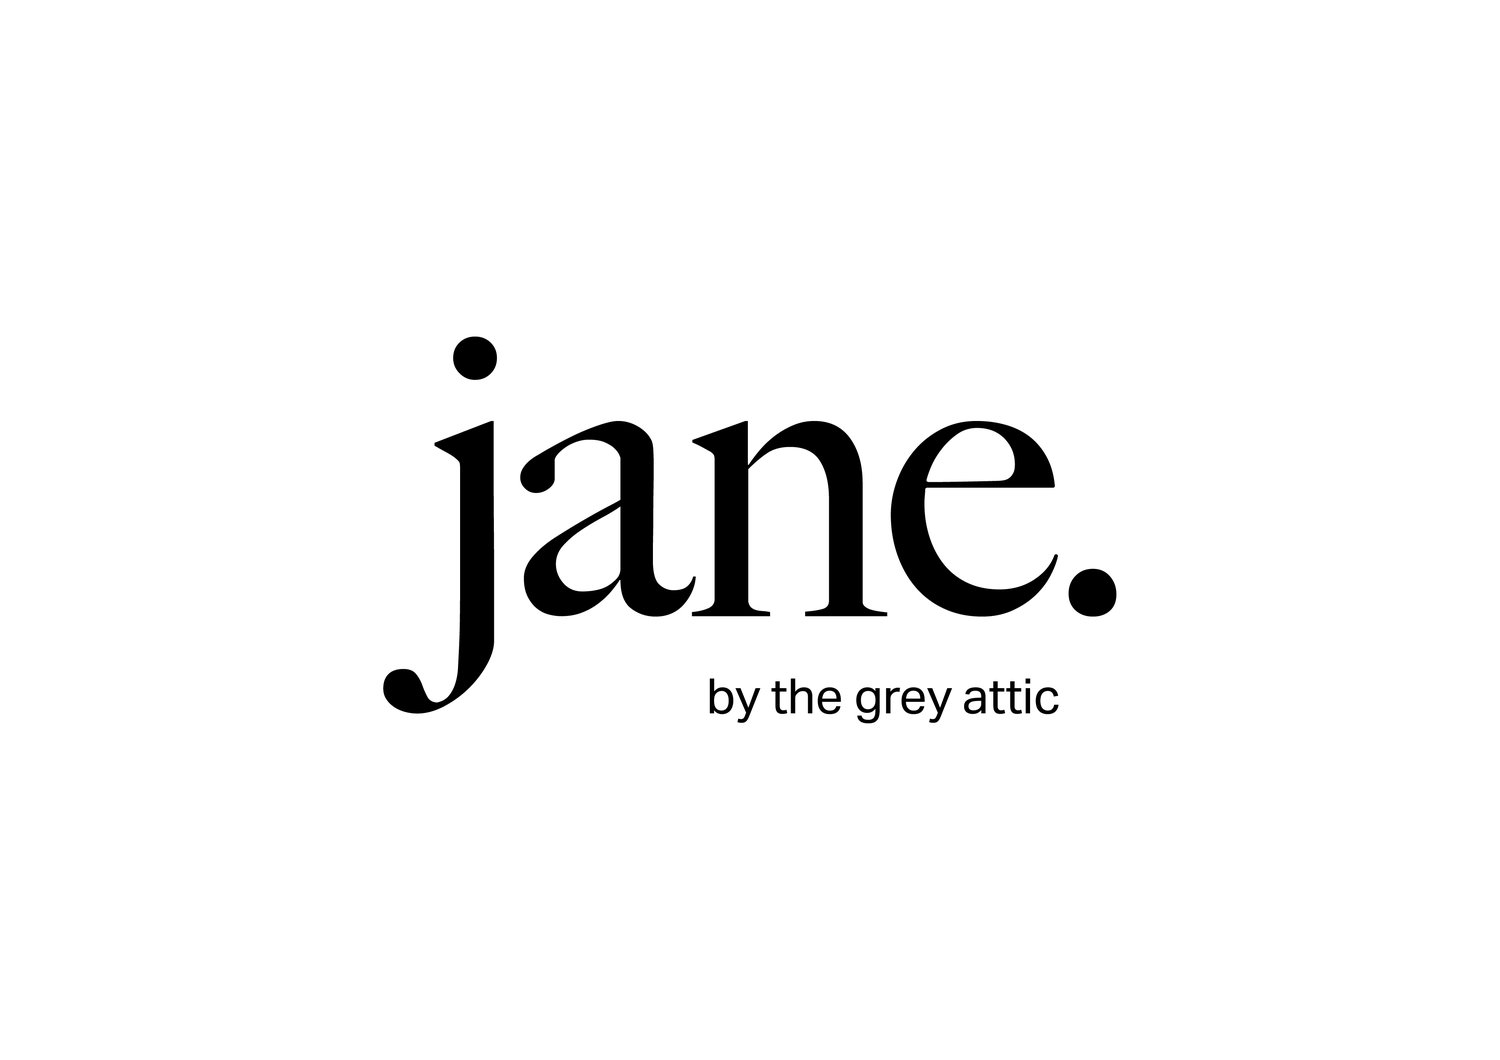 jane. by the grey attic